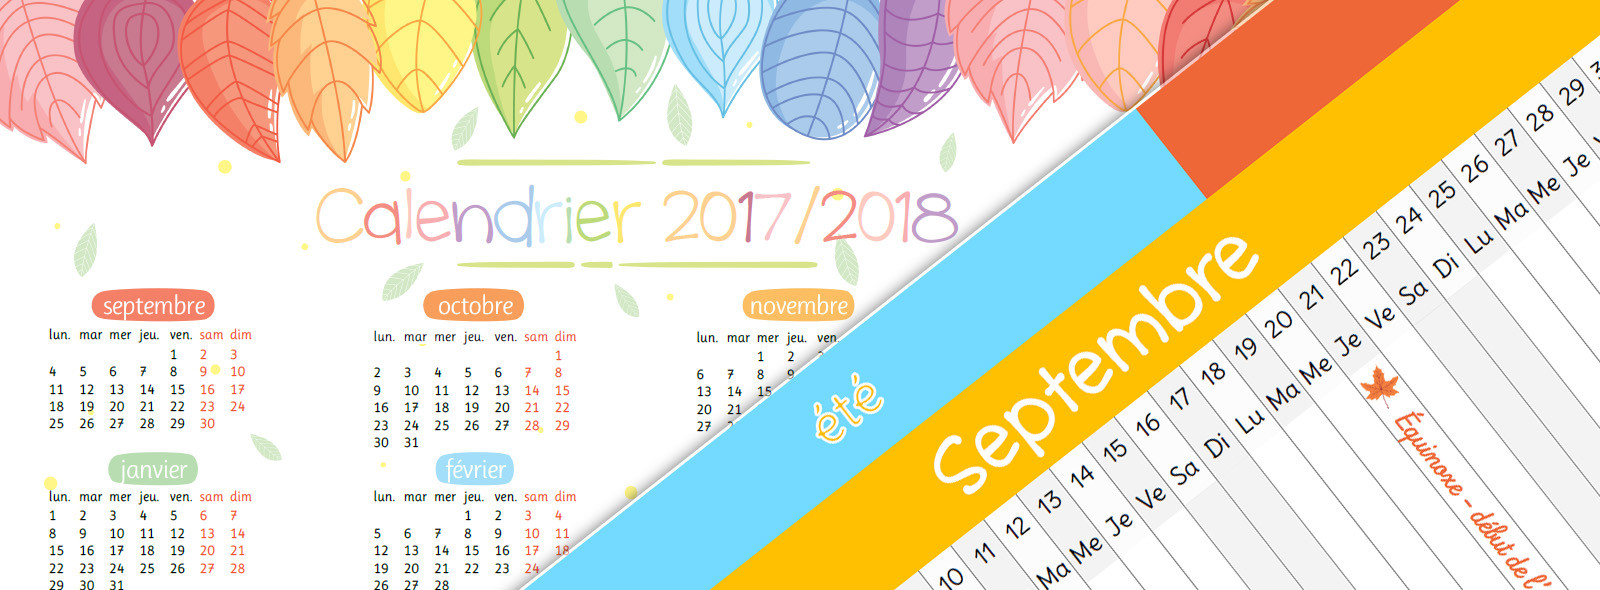 Calendriers 2017-2018